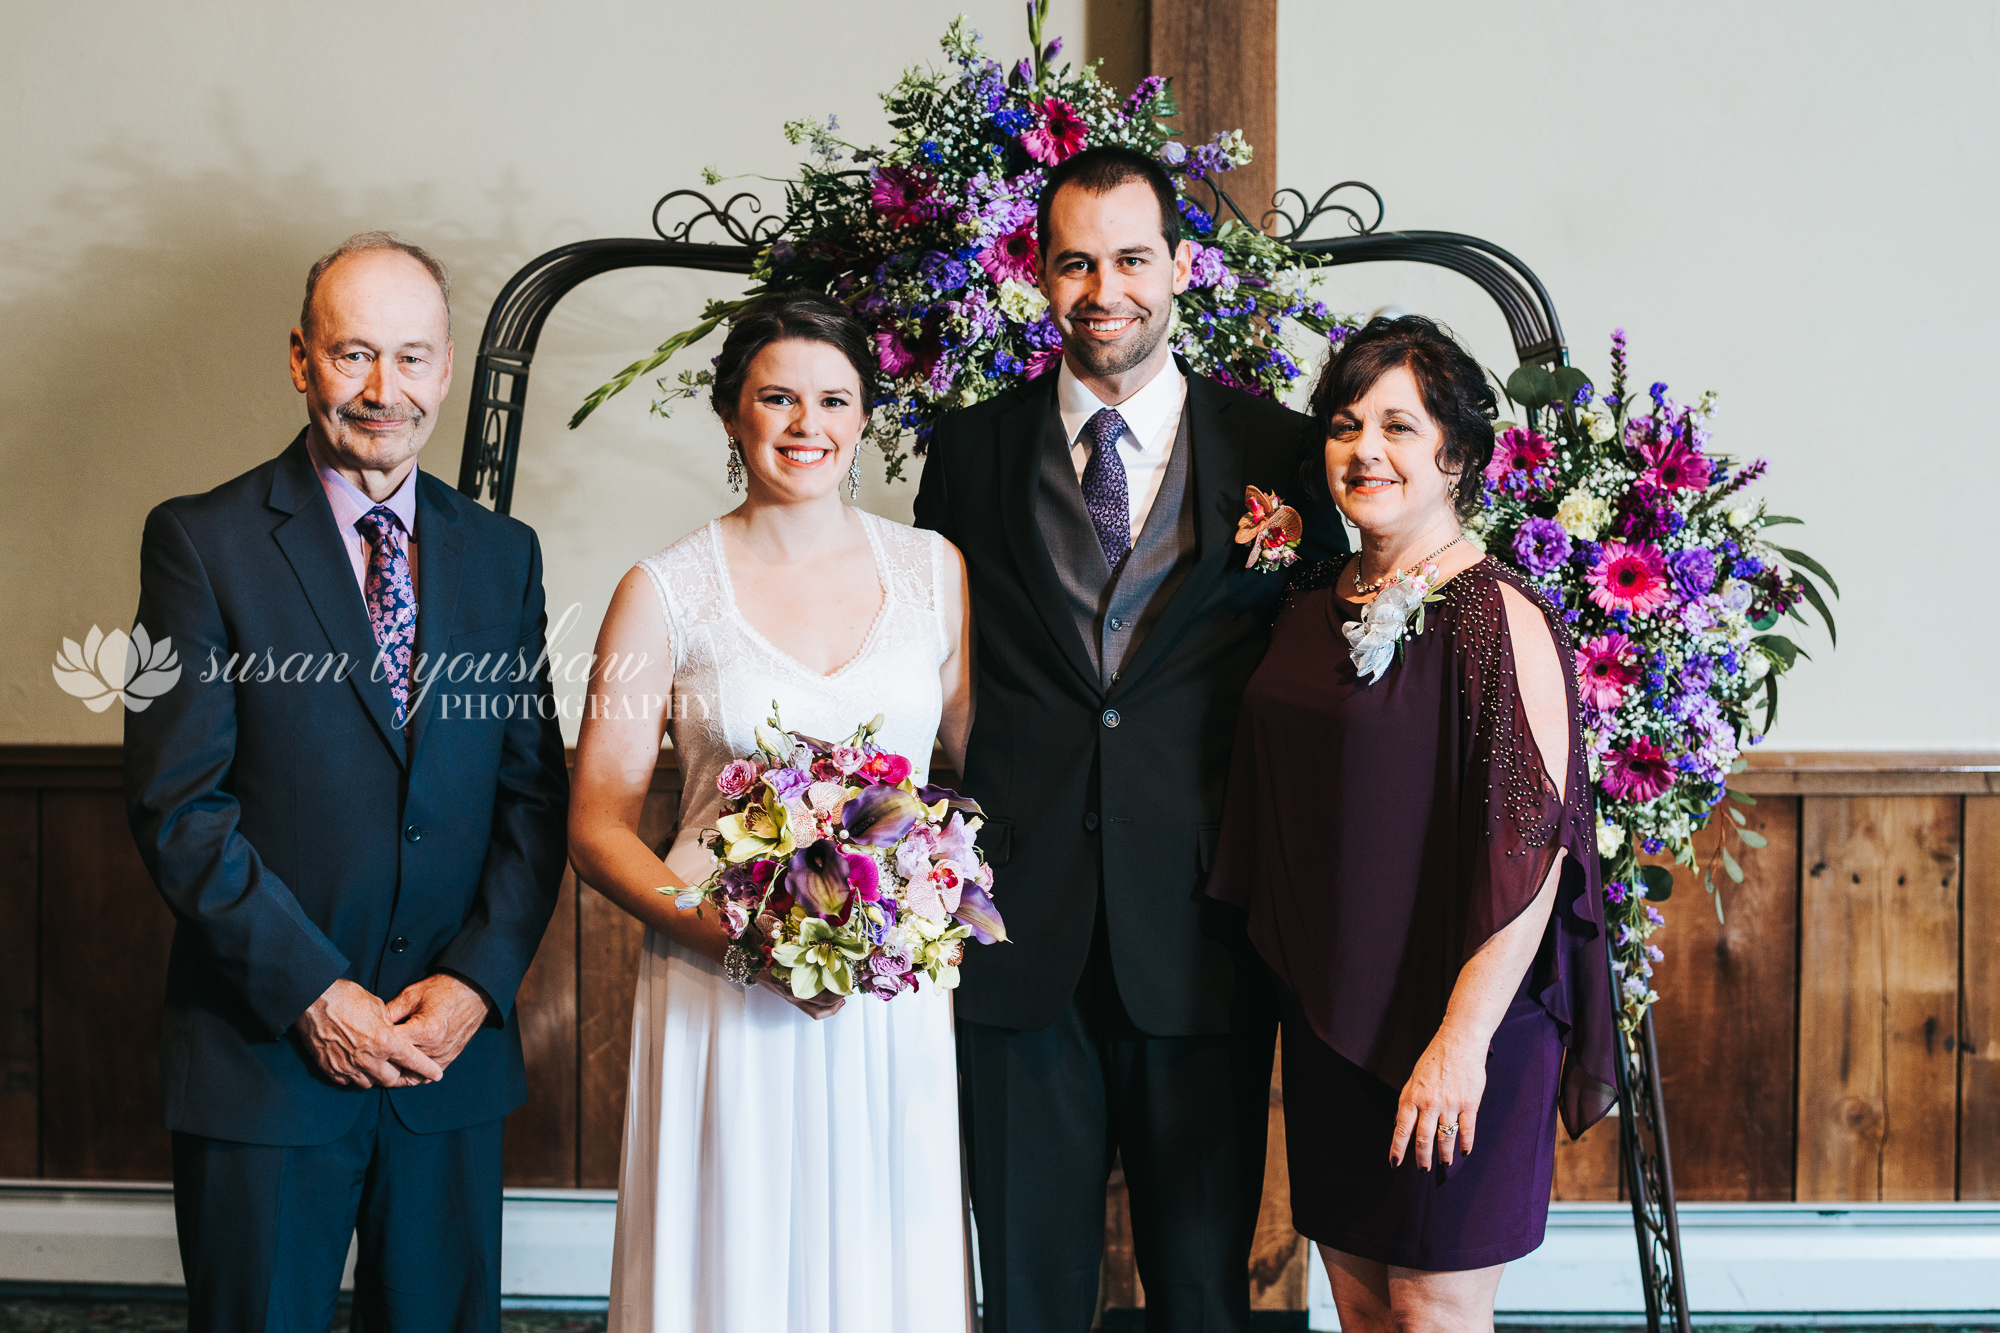 Adena and  Erik Wedding 05-17-2019 SLY Photography-50.jpg